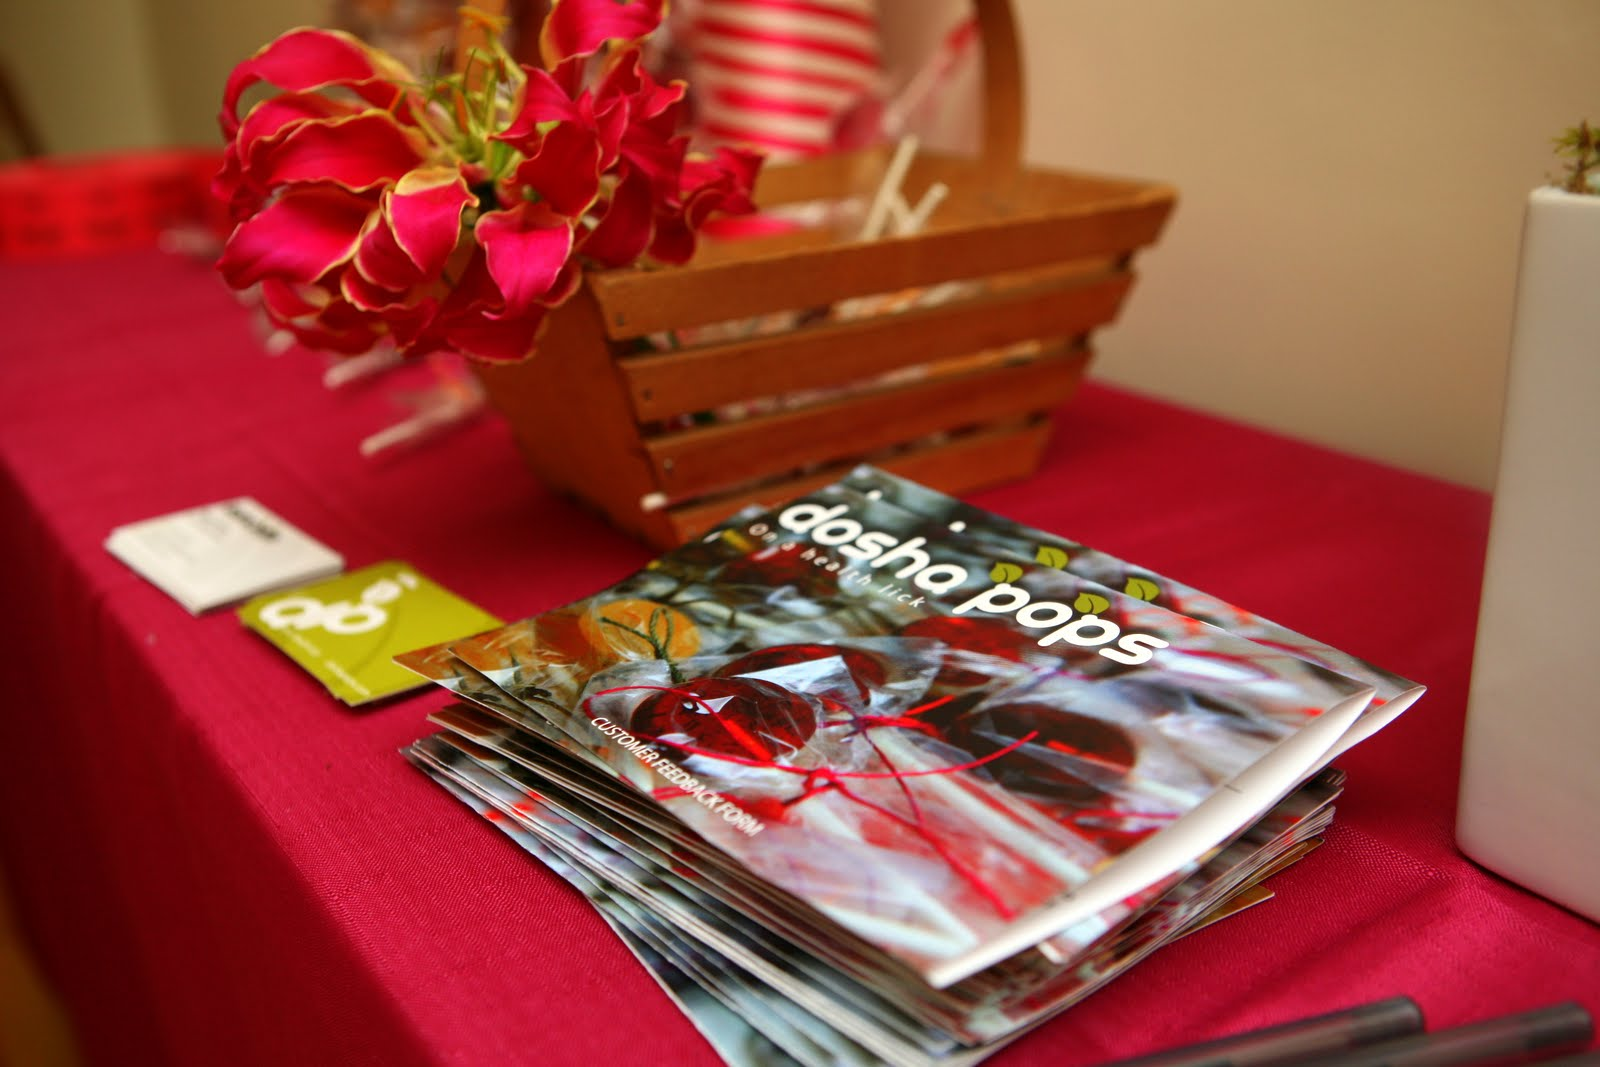 Dosha Pops brochure, basket and business cards on event table